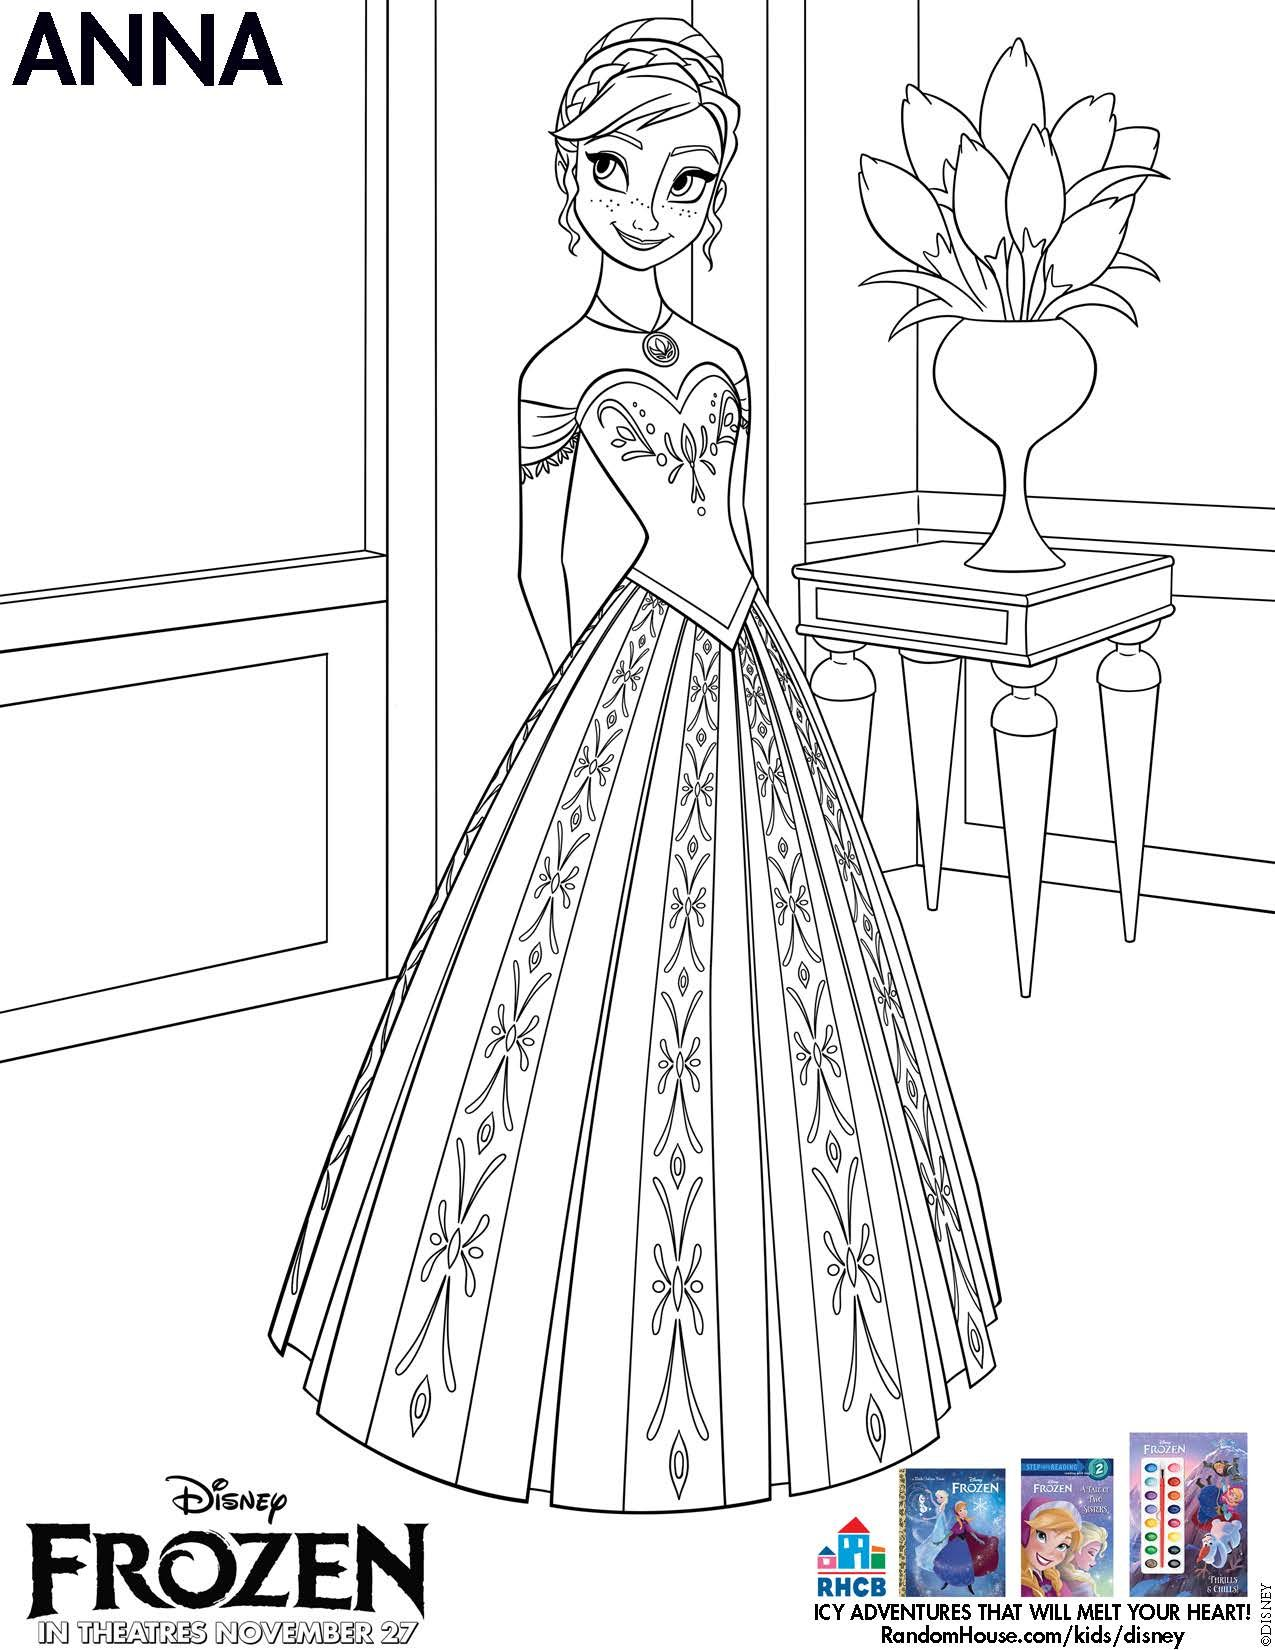 Disney S Frozen Printables Coloring Pages And Storybook App Frozen Coloring Pages Frozen Coloring Sheets Frozen Coloring